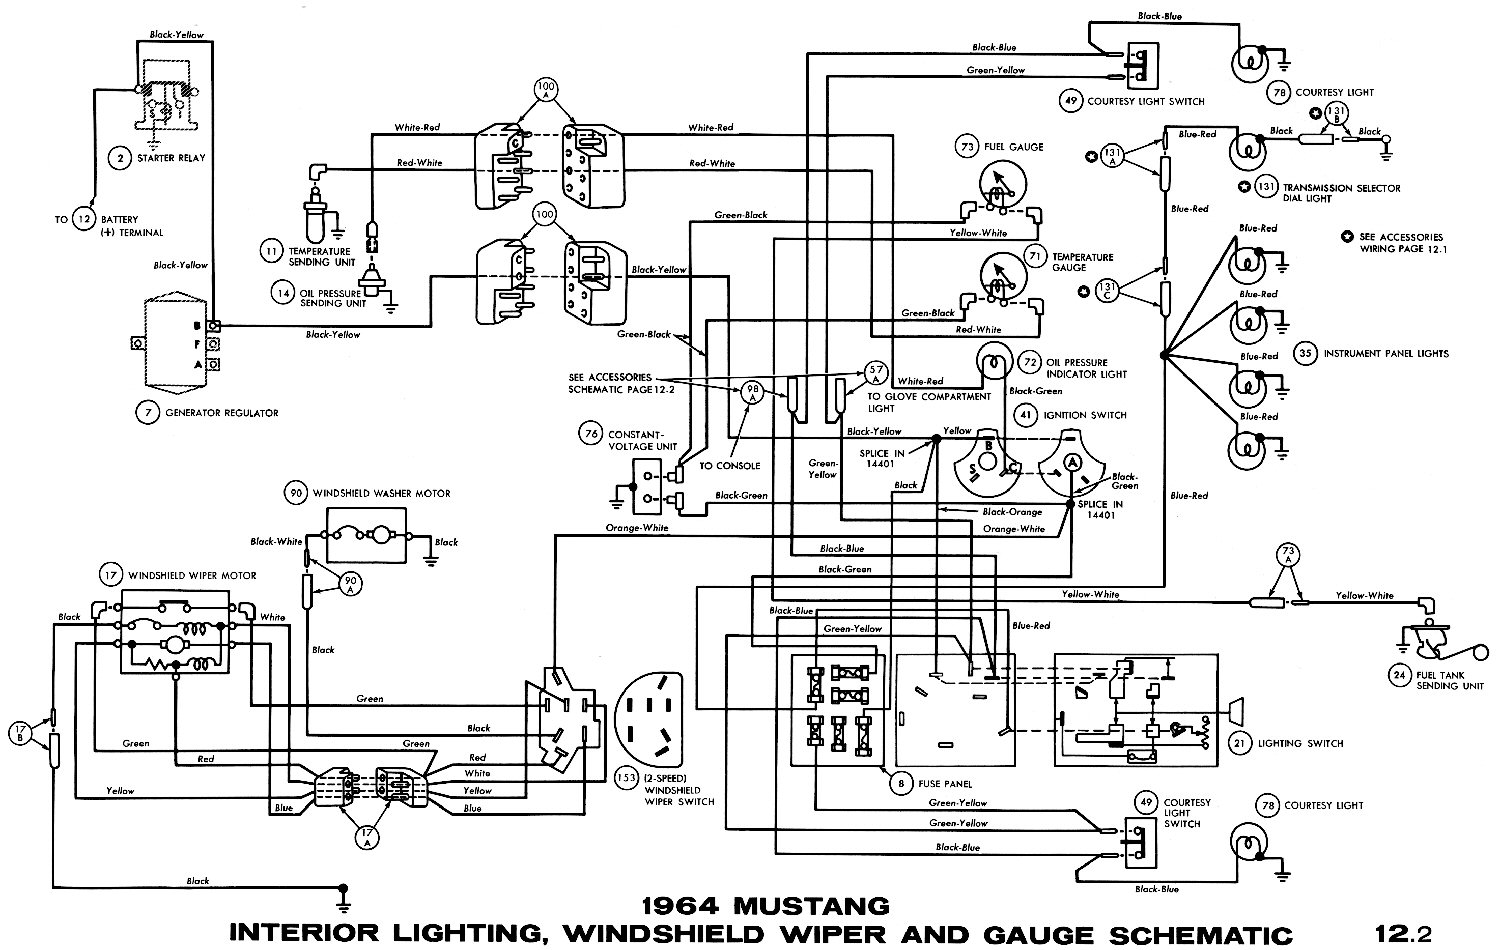 hight resolution of 1970 mustang radio wiring wiring diagram 1970 mustang stereo wiring diagram 1970 mustang radio wiring